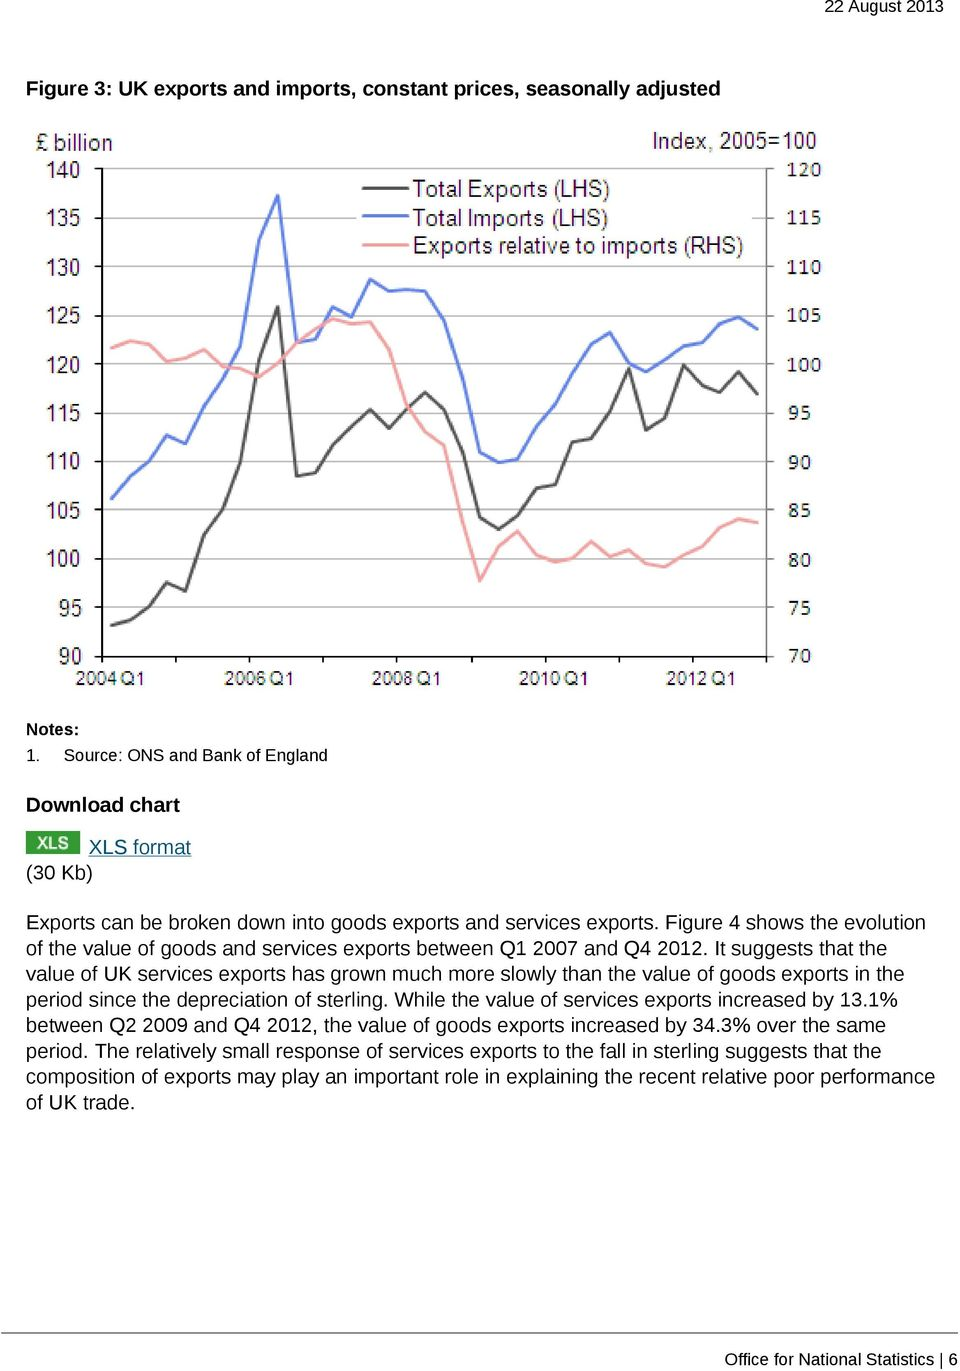 It suggests that the value of UK services exports has grown much more slowly than the value of goods exports in the period since the depreciation of sterling.